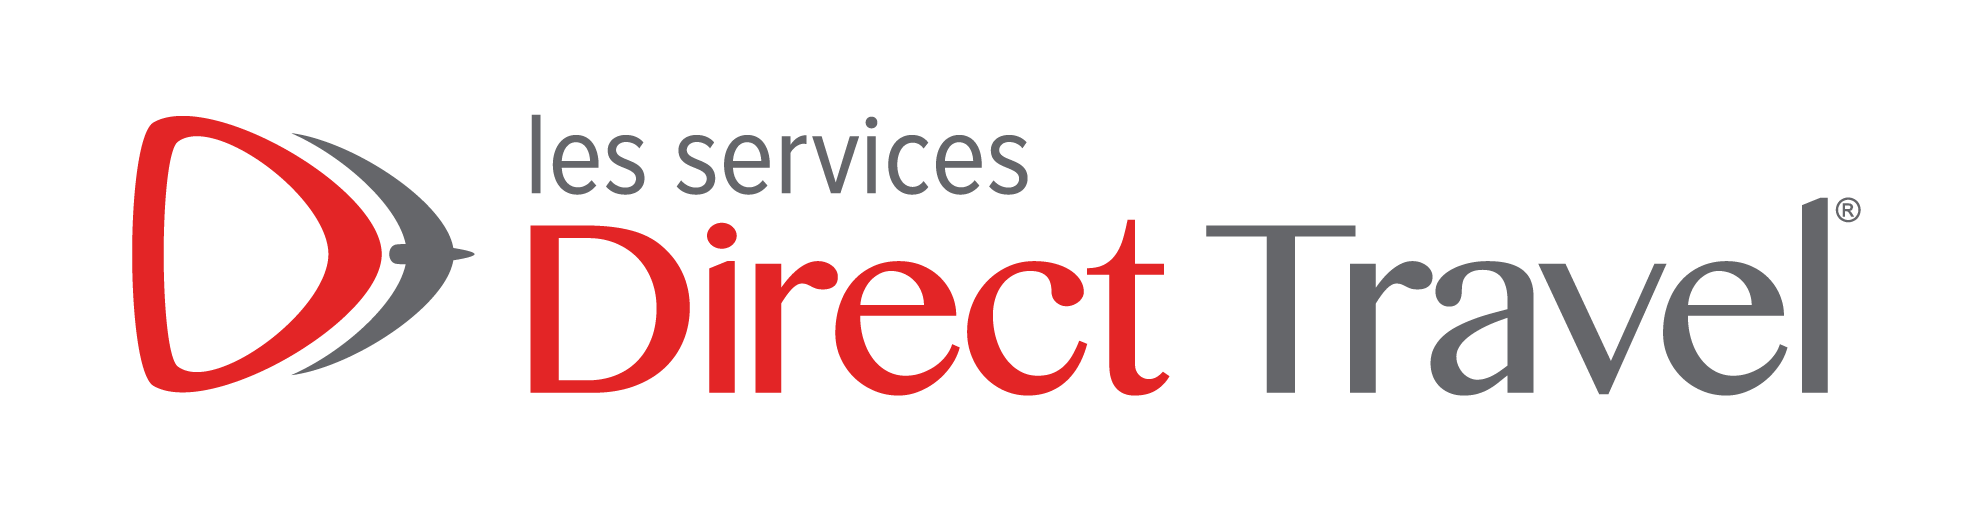 les services direct travel-01